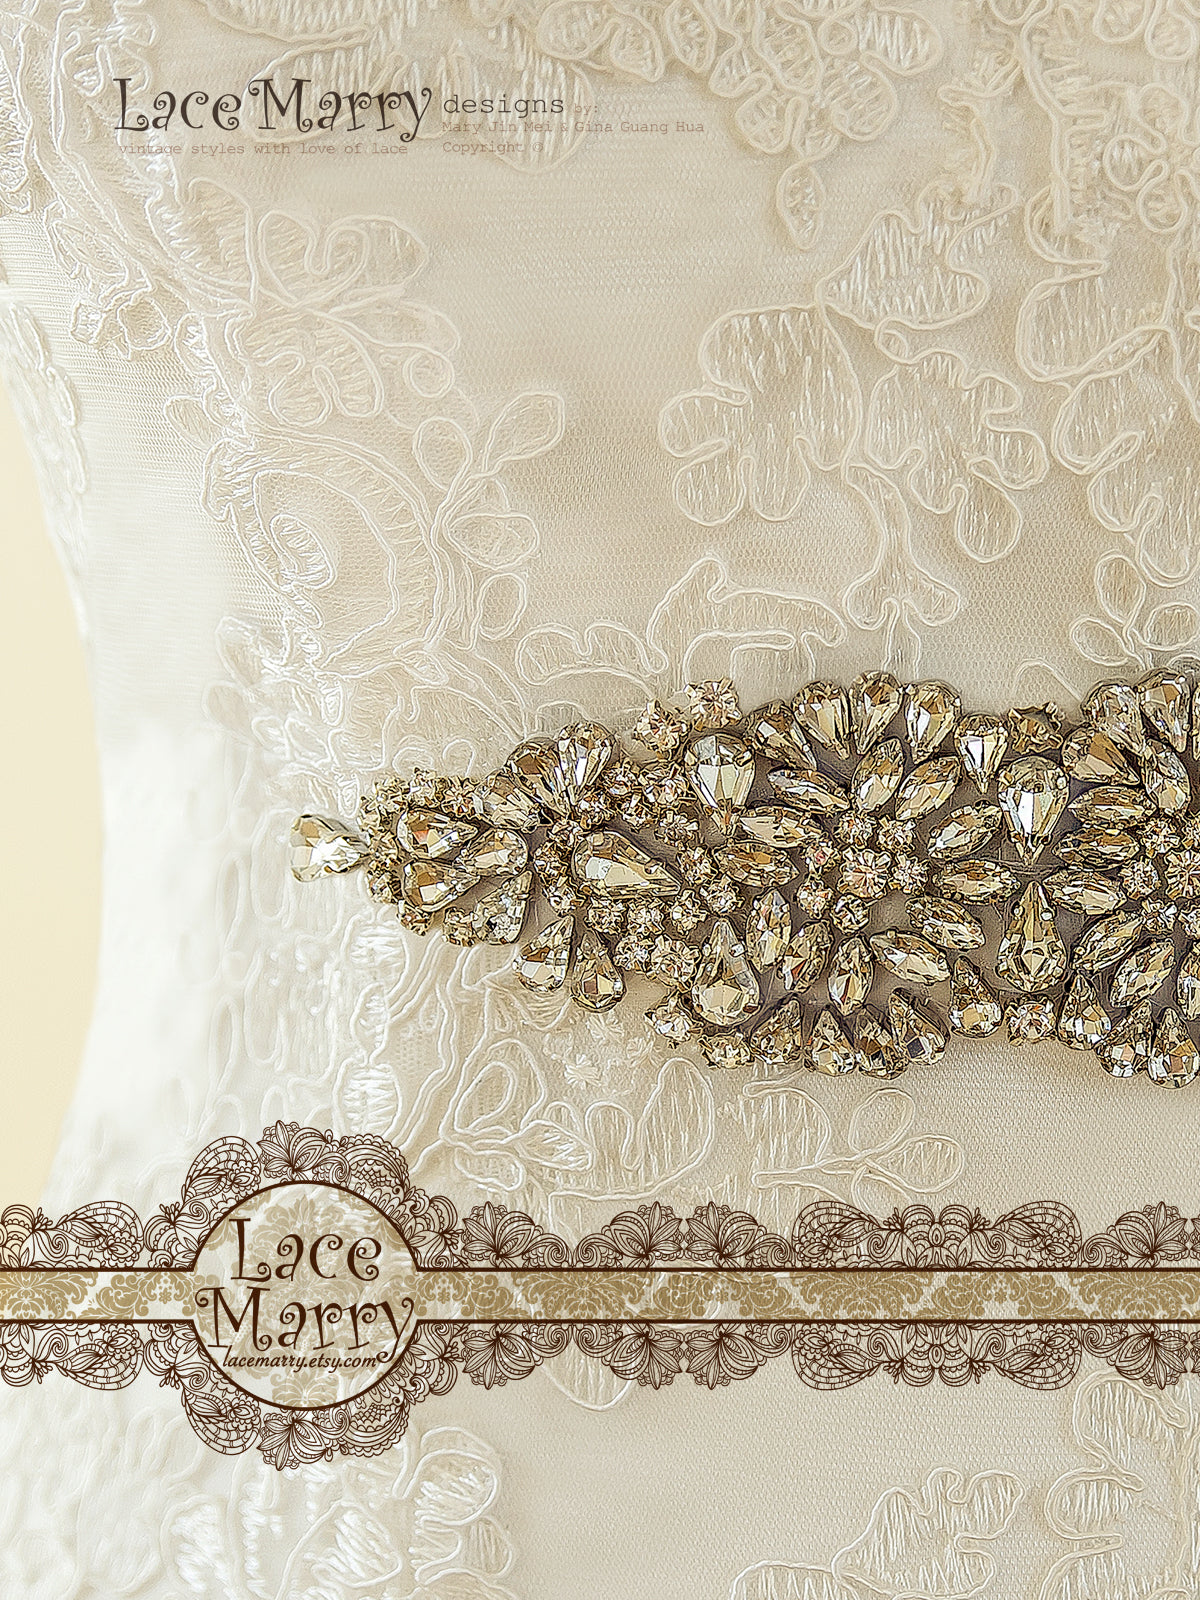 Detailed Beaded Brooch on Lace Wedding Dress